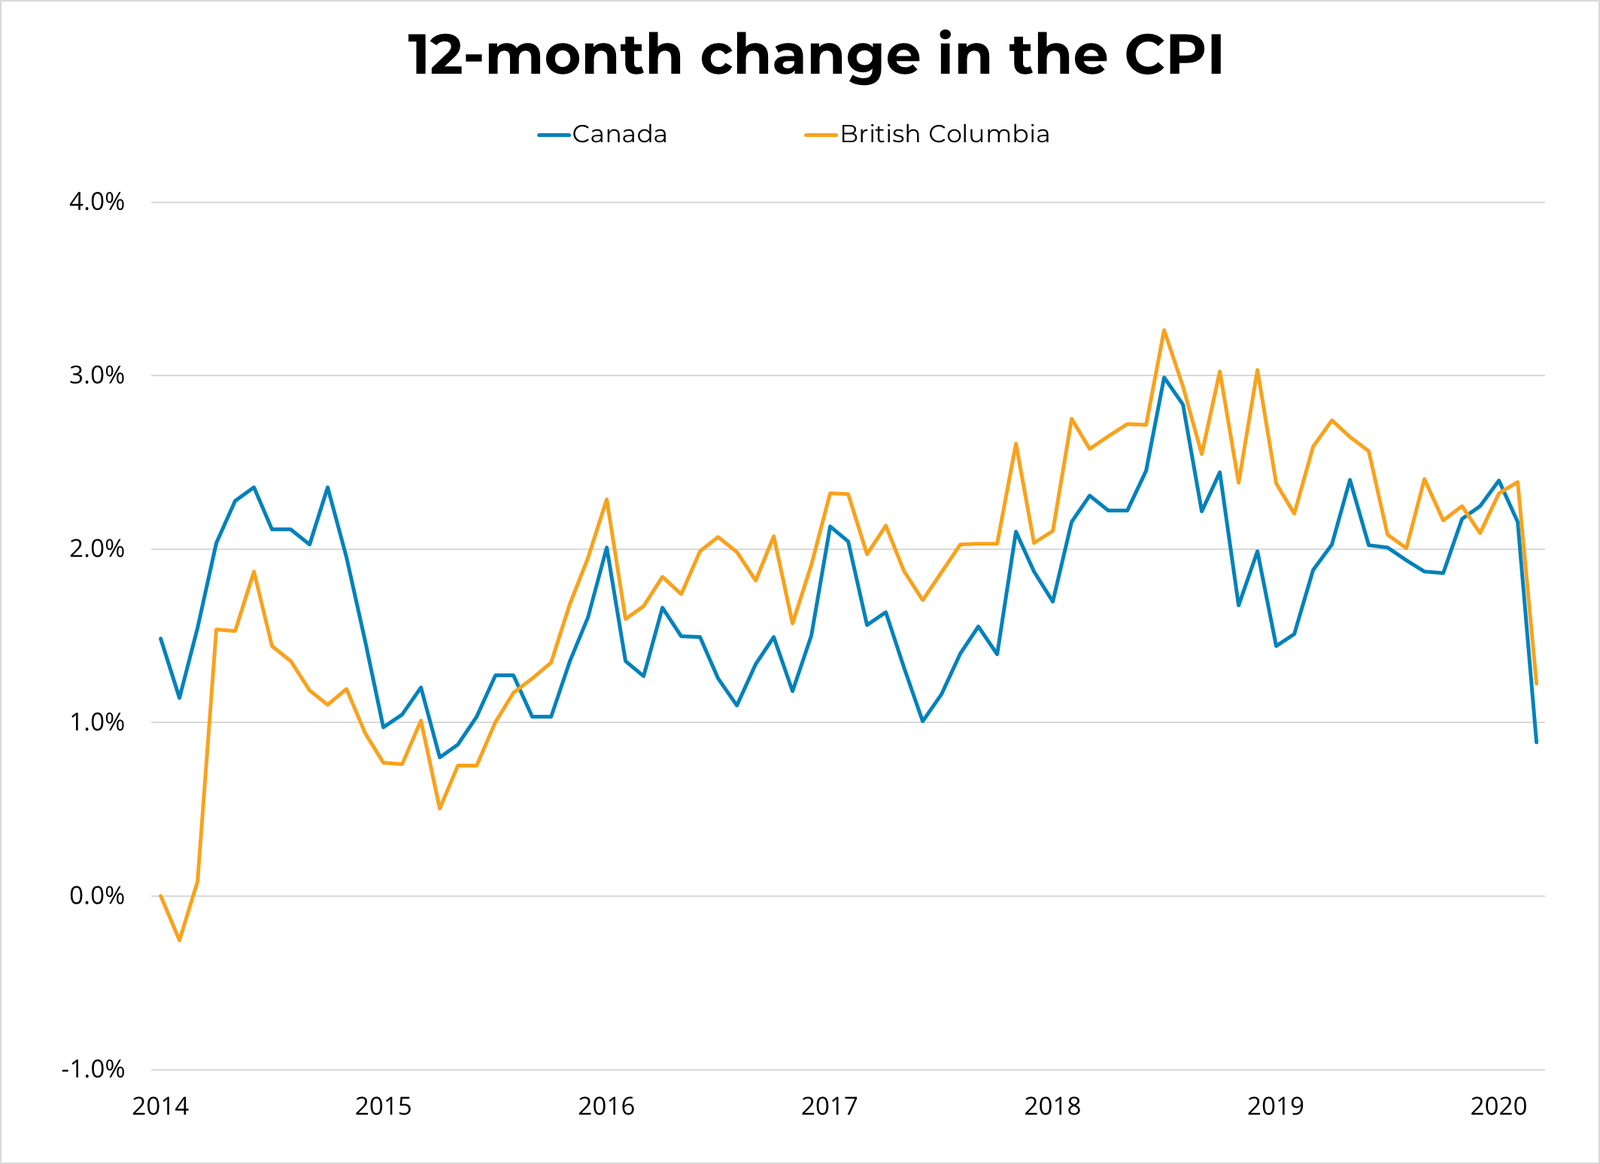 12 month change in CPI